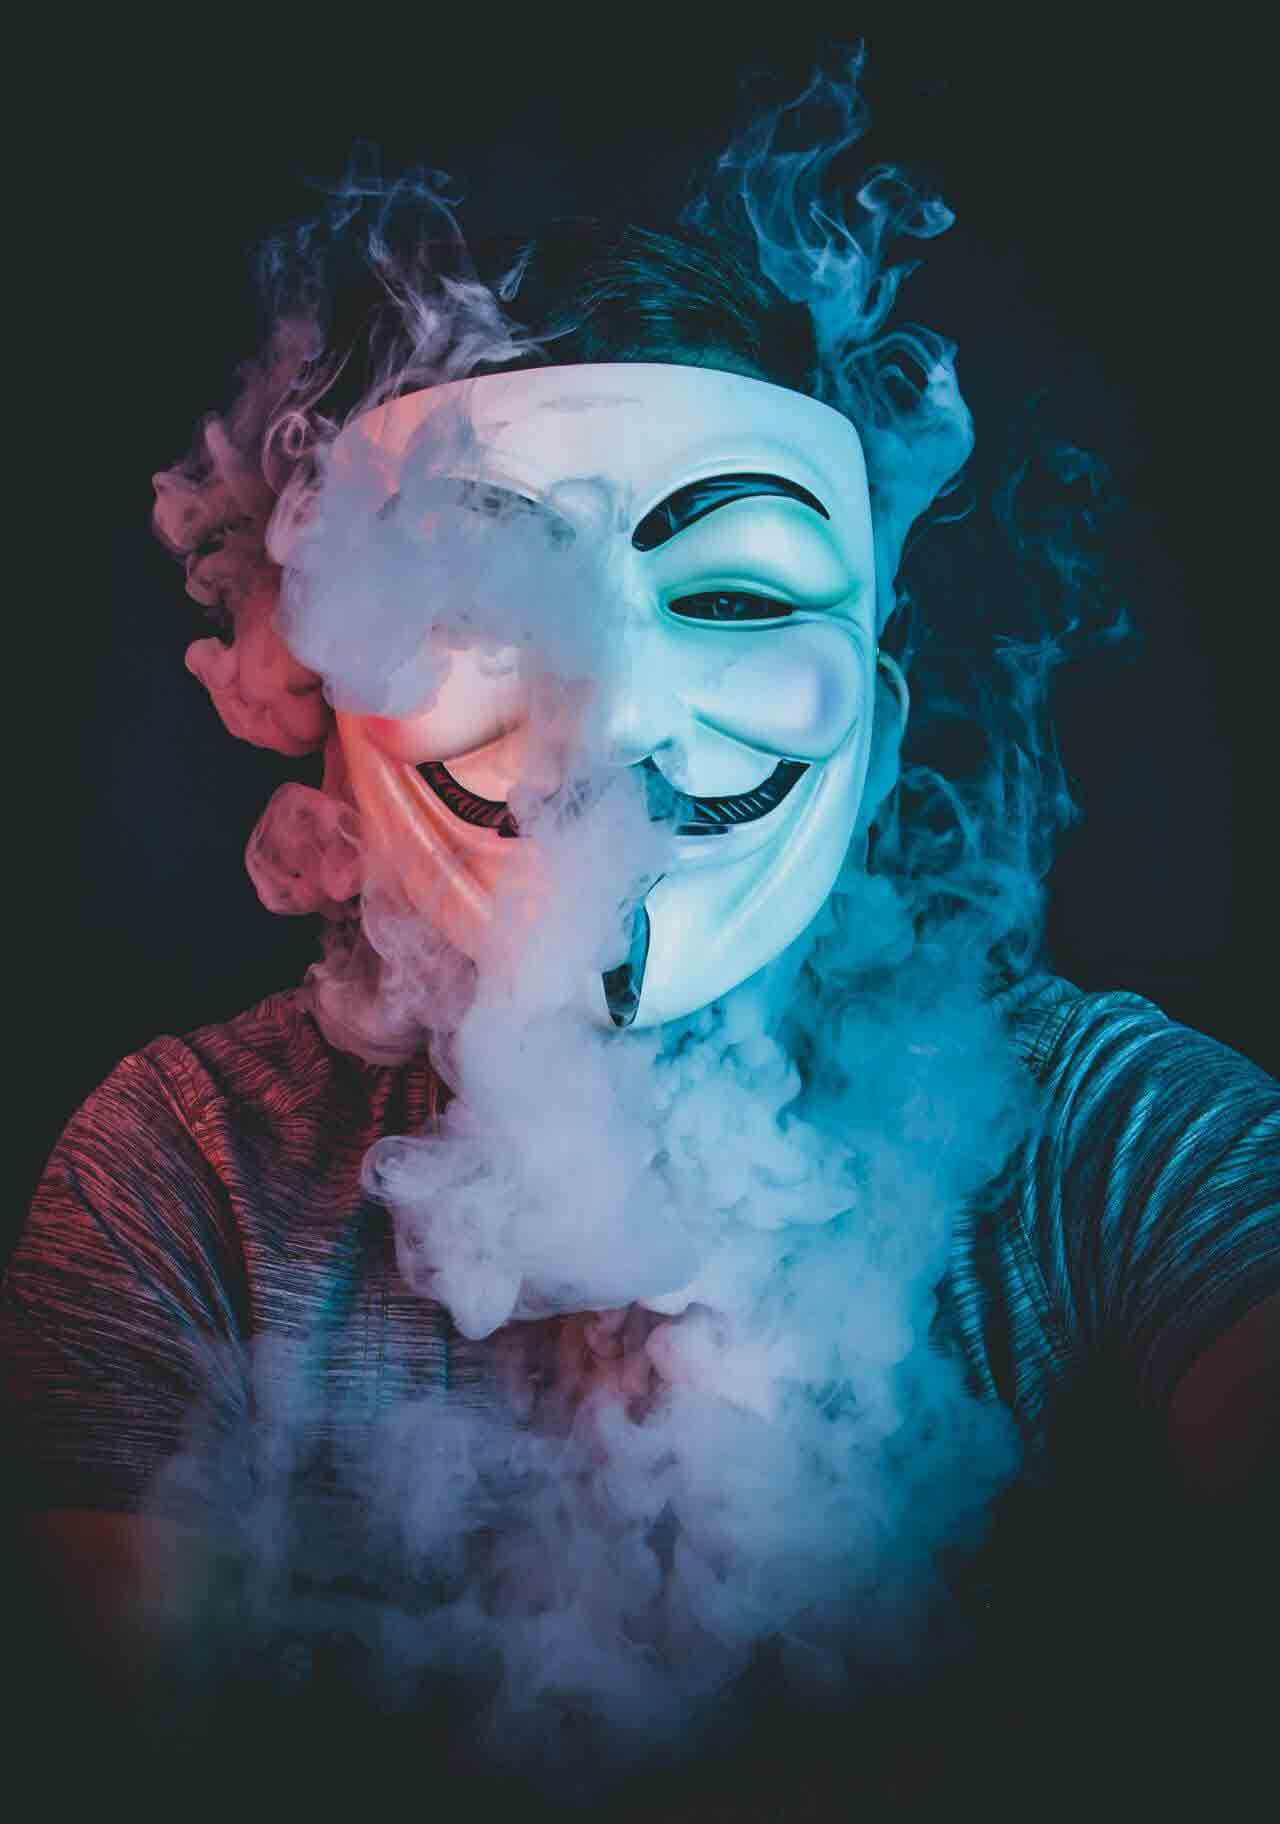 anonymous Cool Whatsapp Dp Images